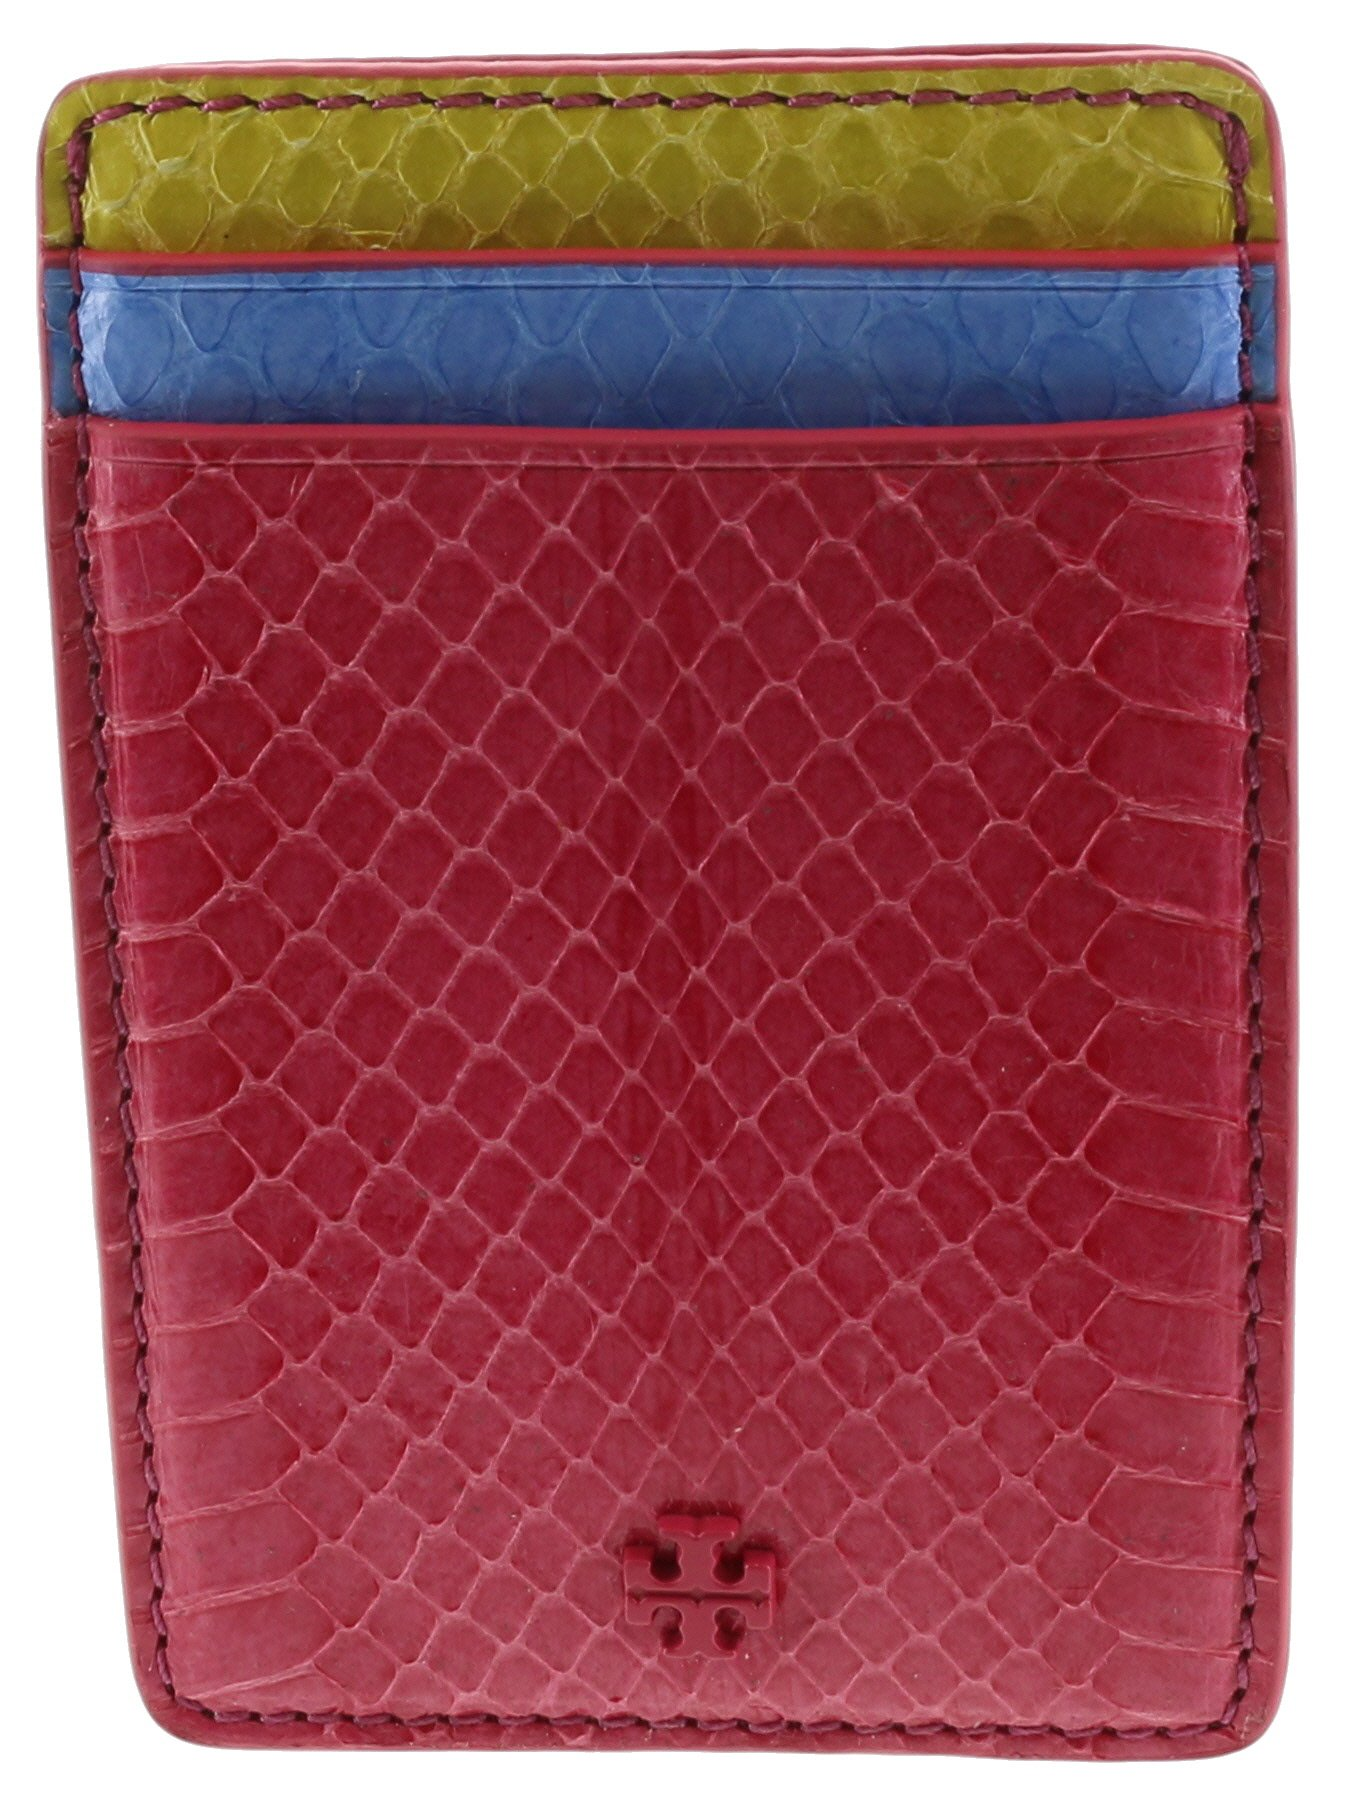 Tory Burch Multi Snake Card Case in Leather, Style No. 30932 (Multi)